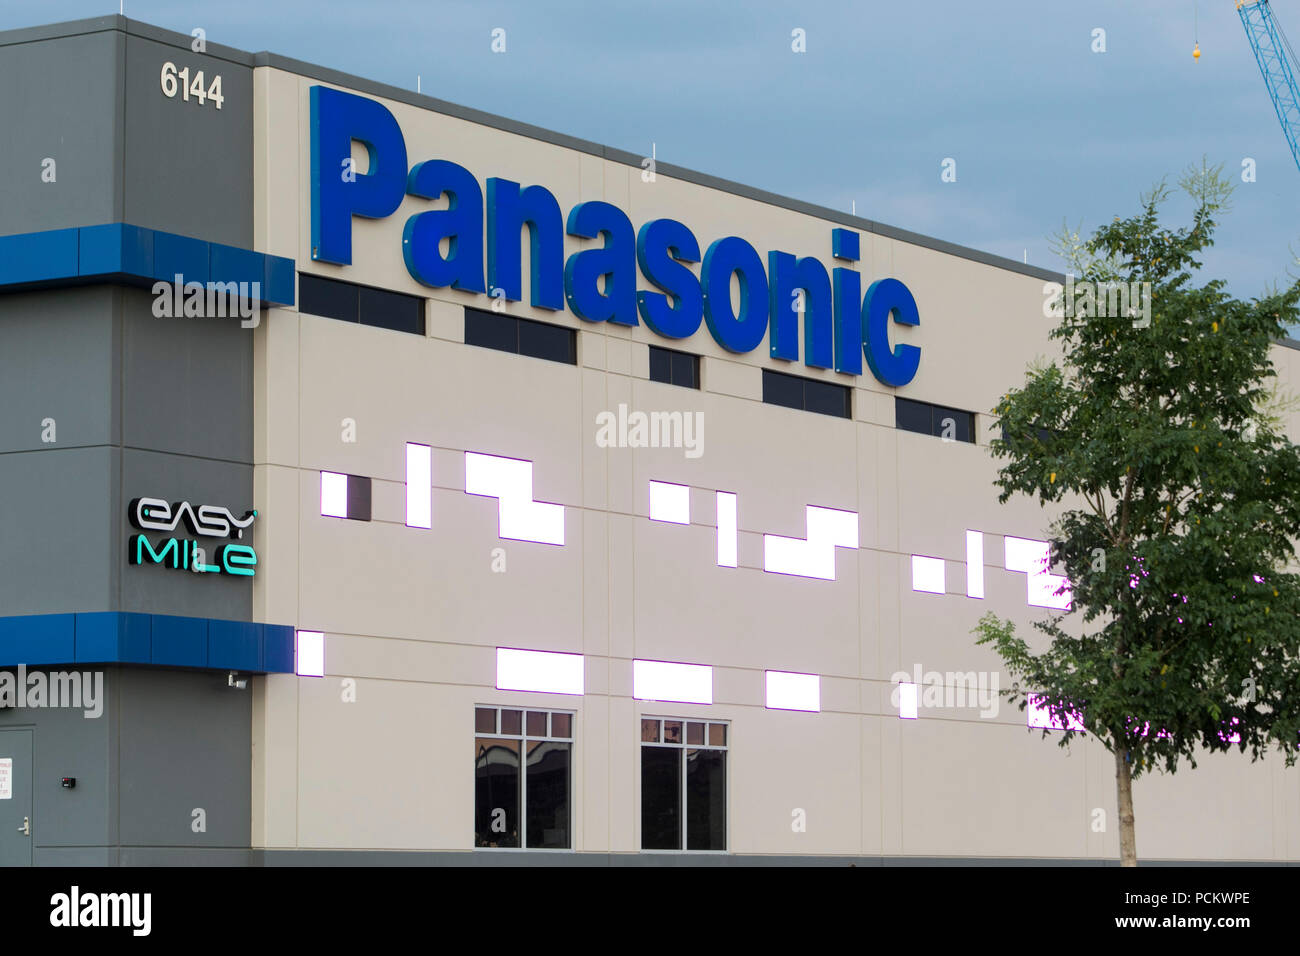 A logo sign outside of a facility occupied by Panasonic in Denver, Colorado, on July 21, 2018. - Stock Image